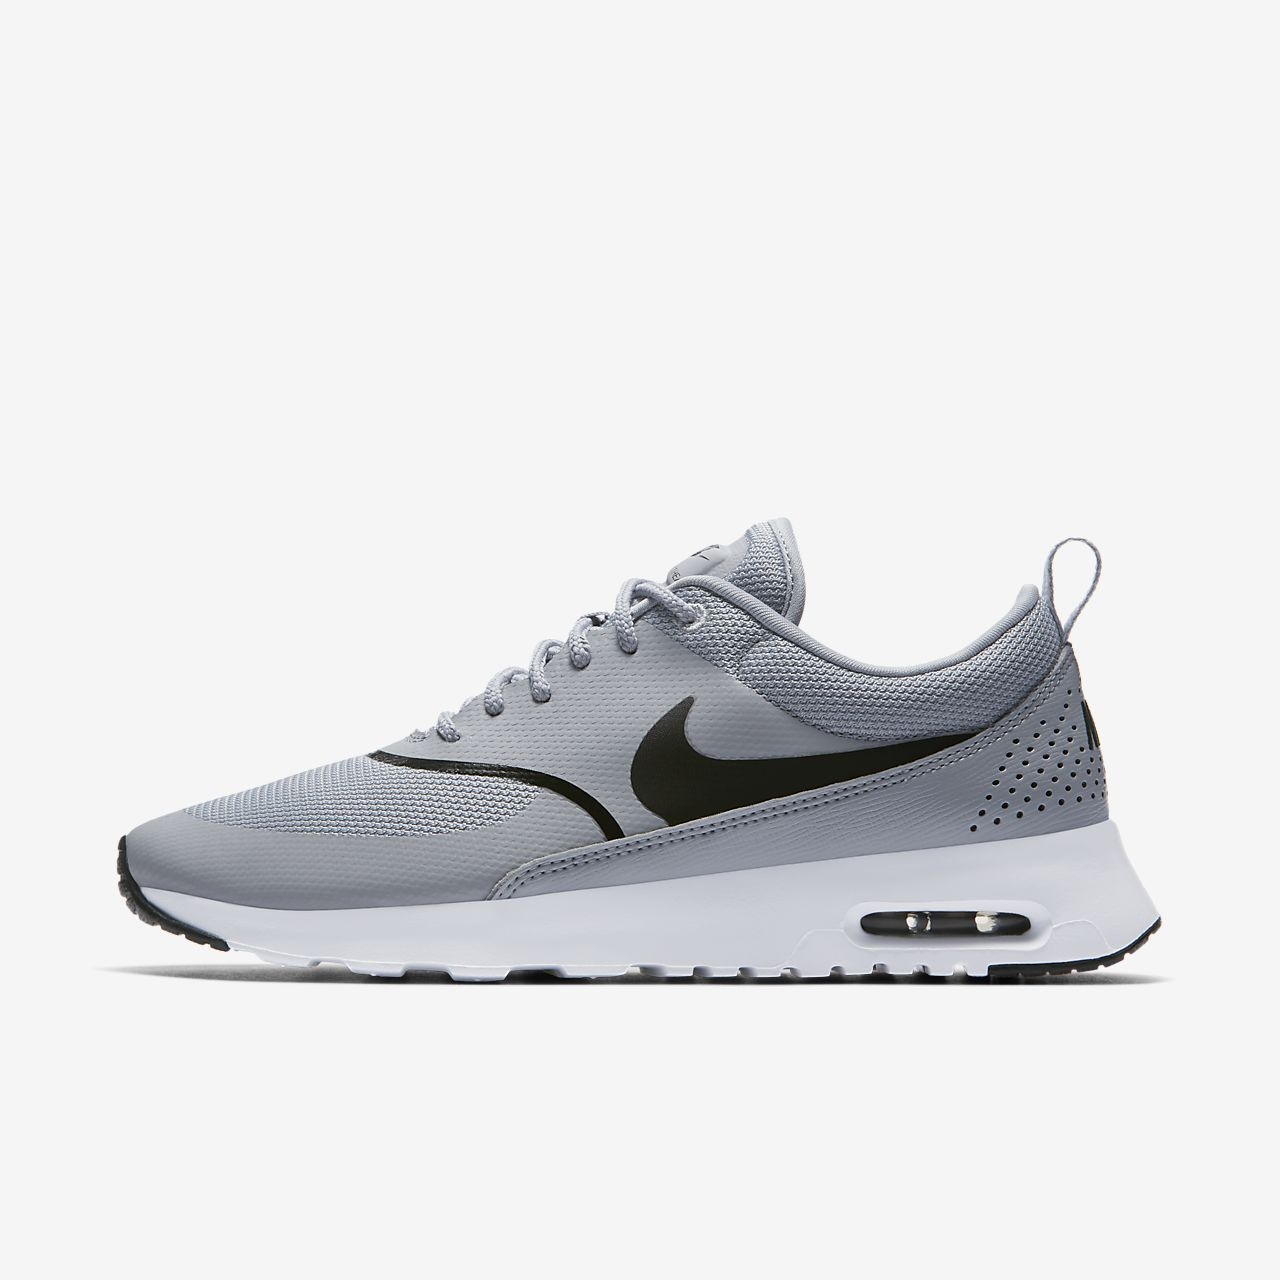 sports shoes 6f37d fe99c ... Chaussure Nike Air Max Thea pour Femme